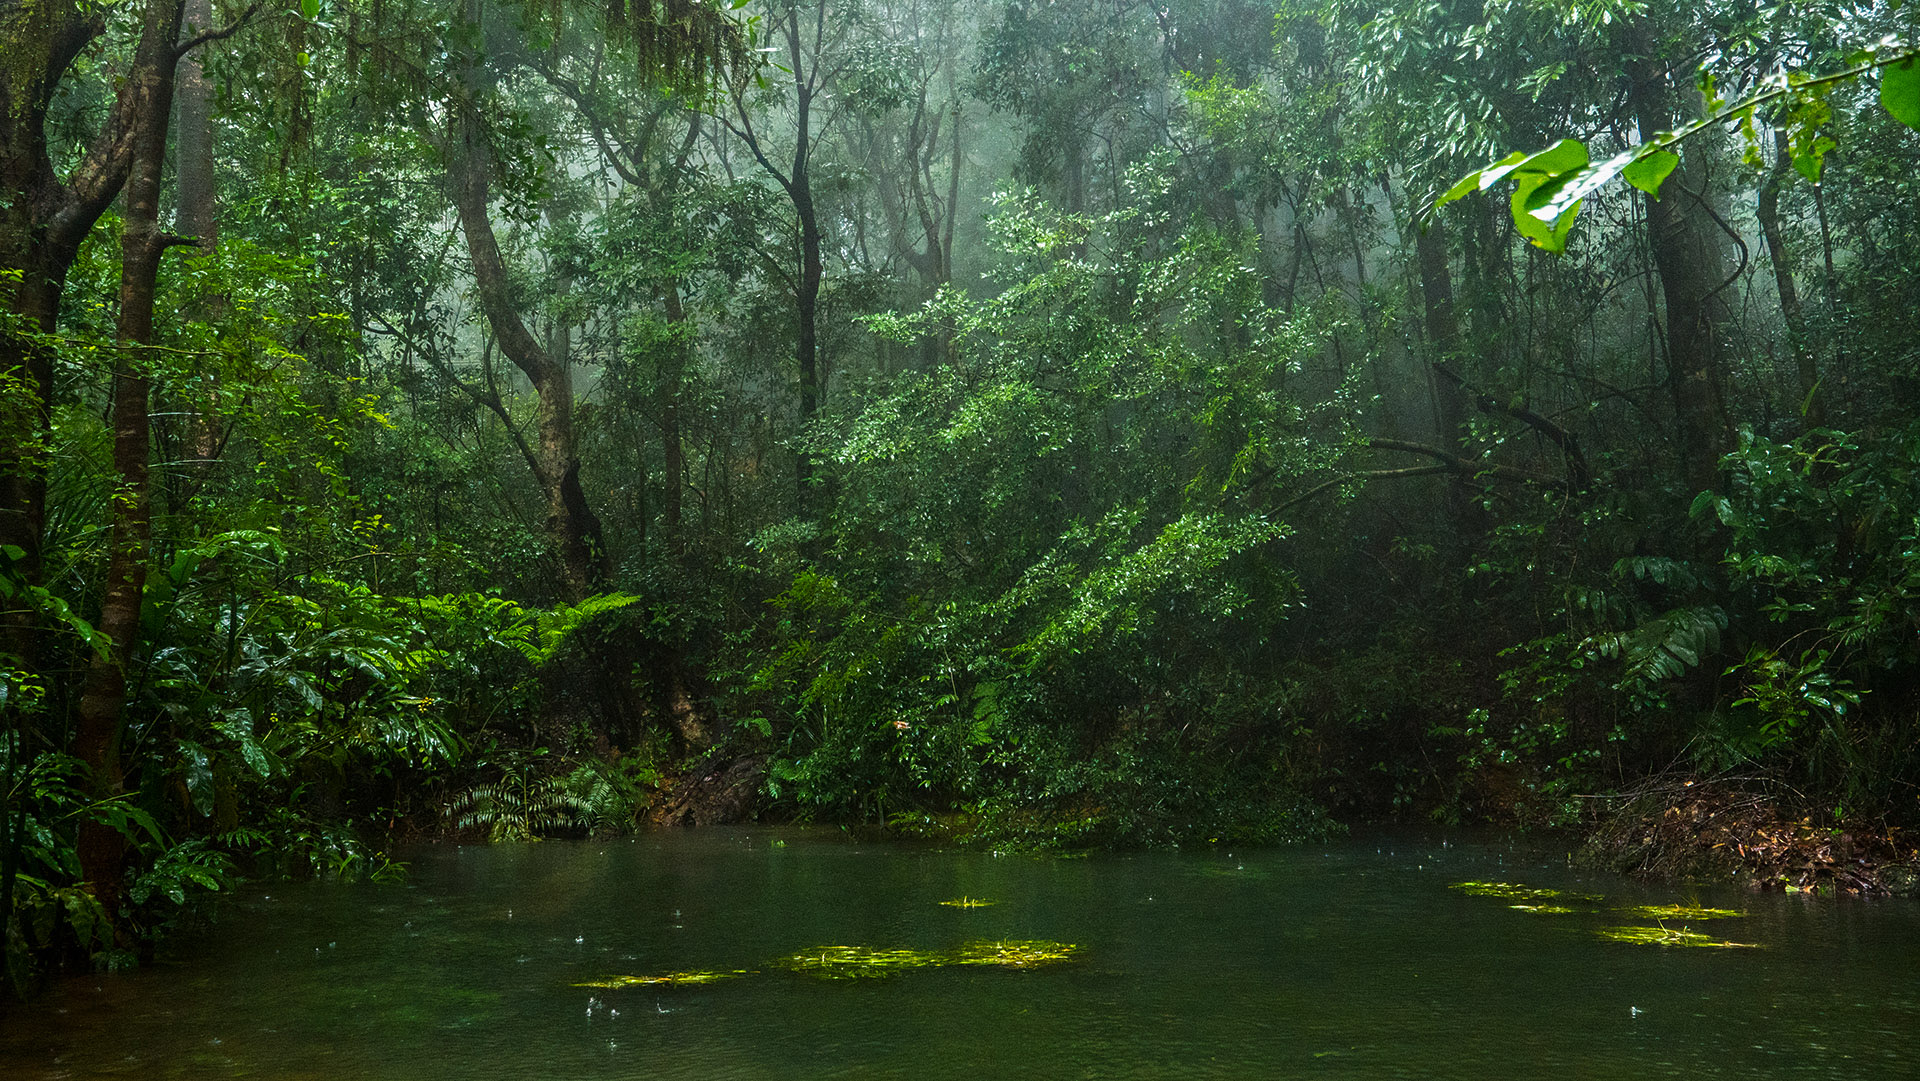 The landscape around Agumbe has a fine dendritic network of streams that come alive in the monsoon. Photo: Pradeep Hegde